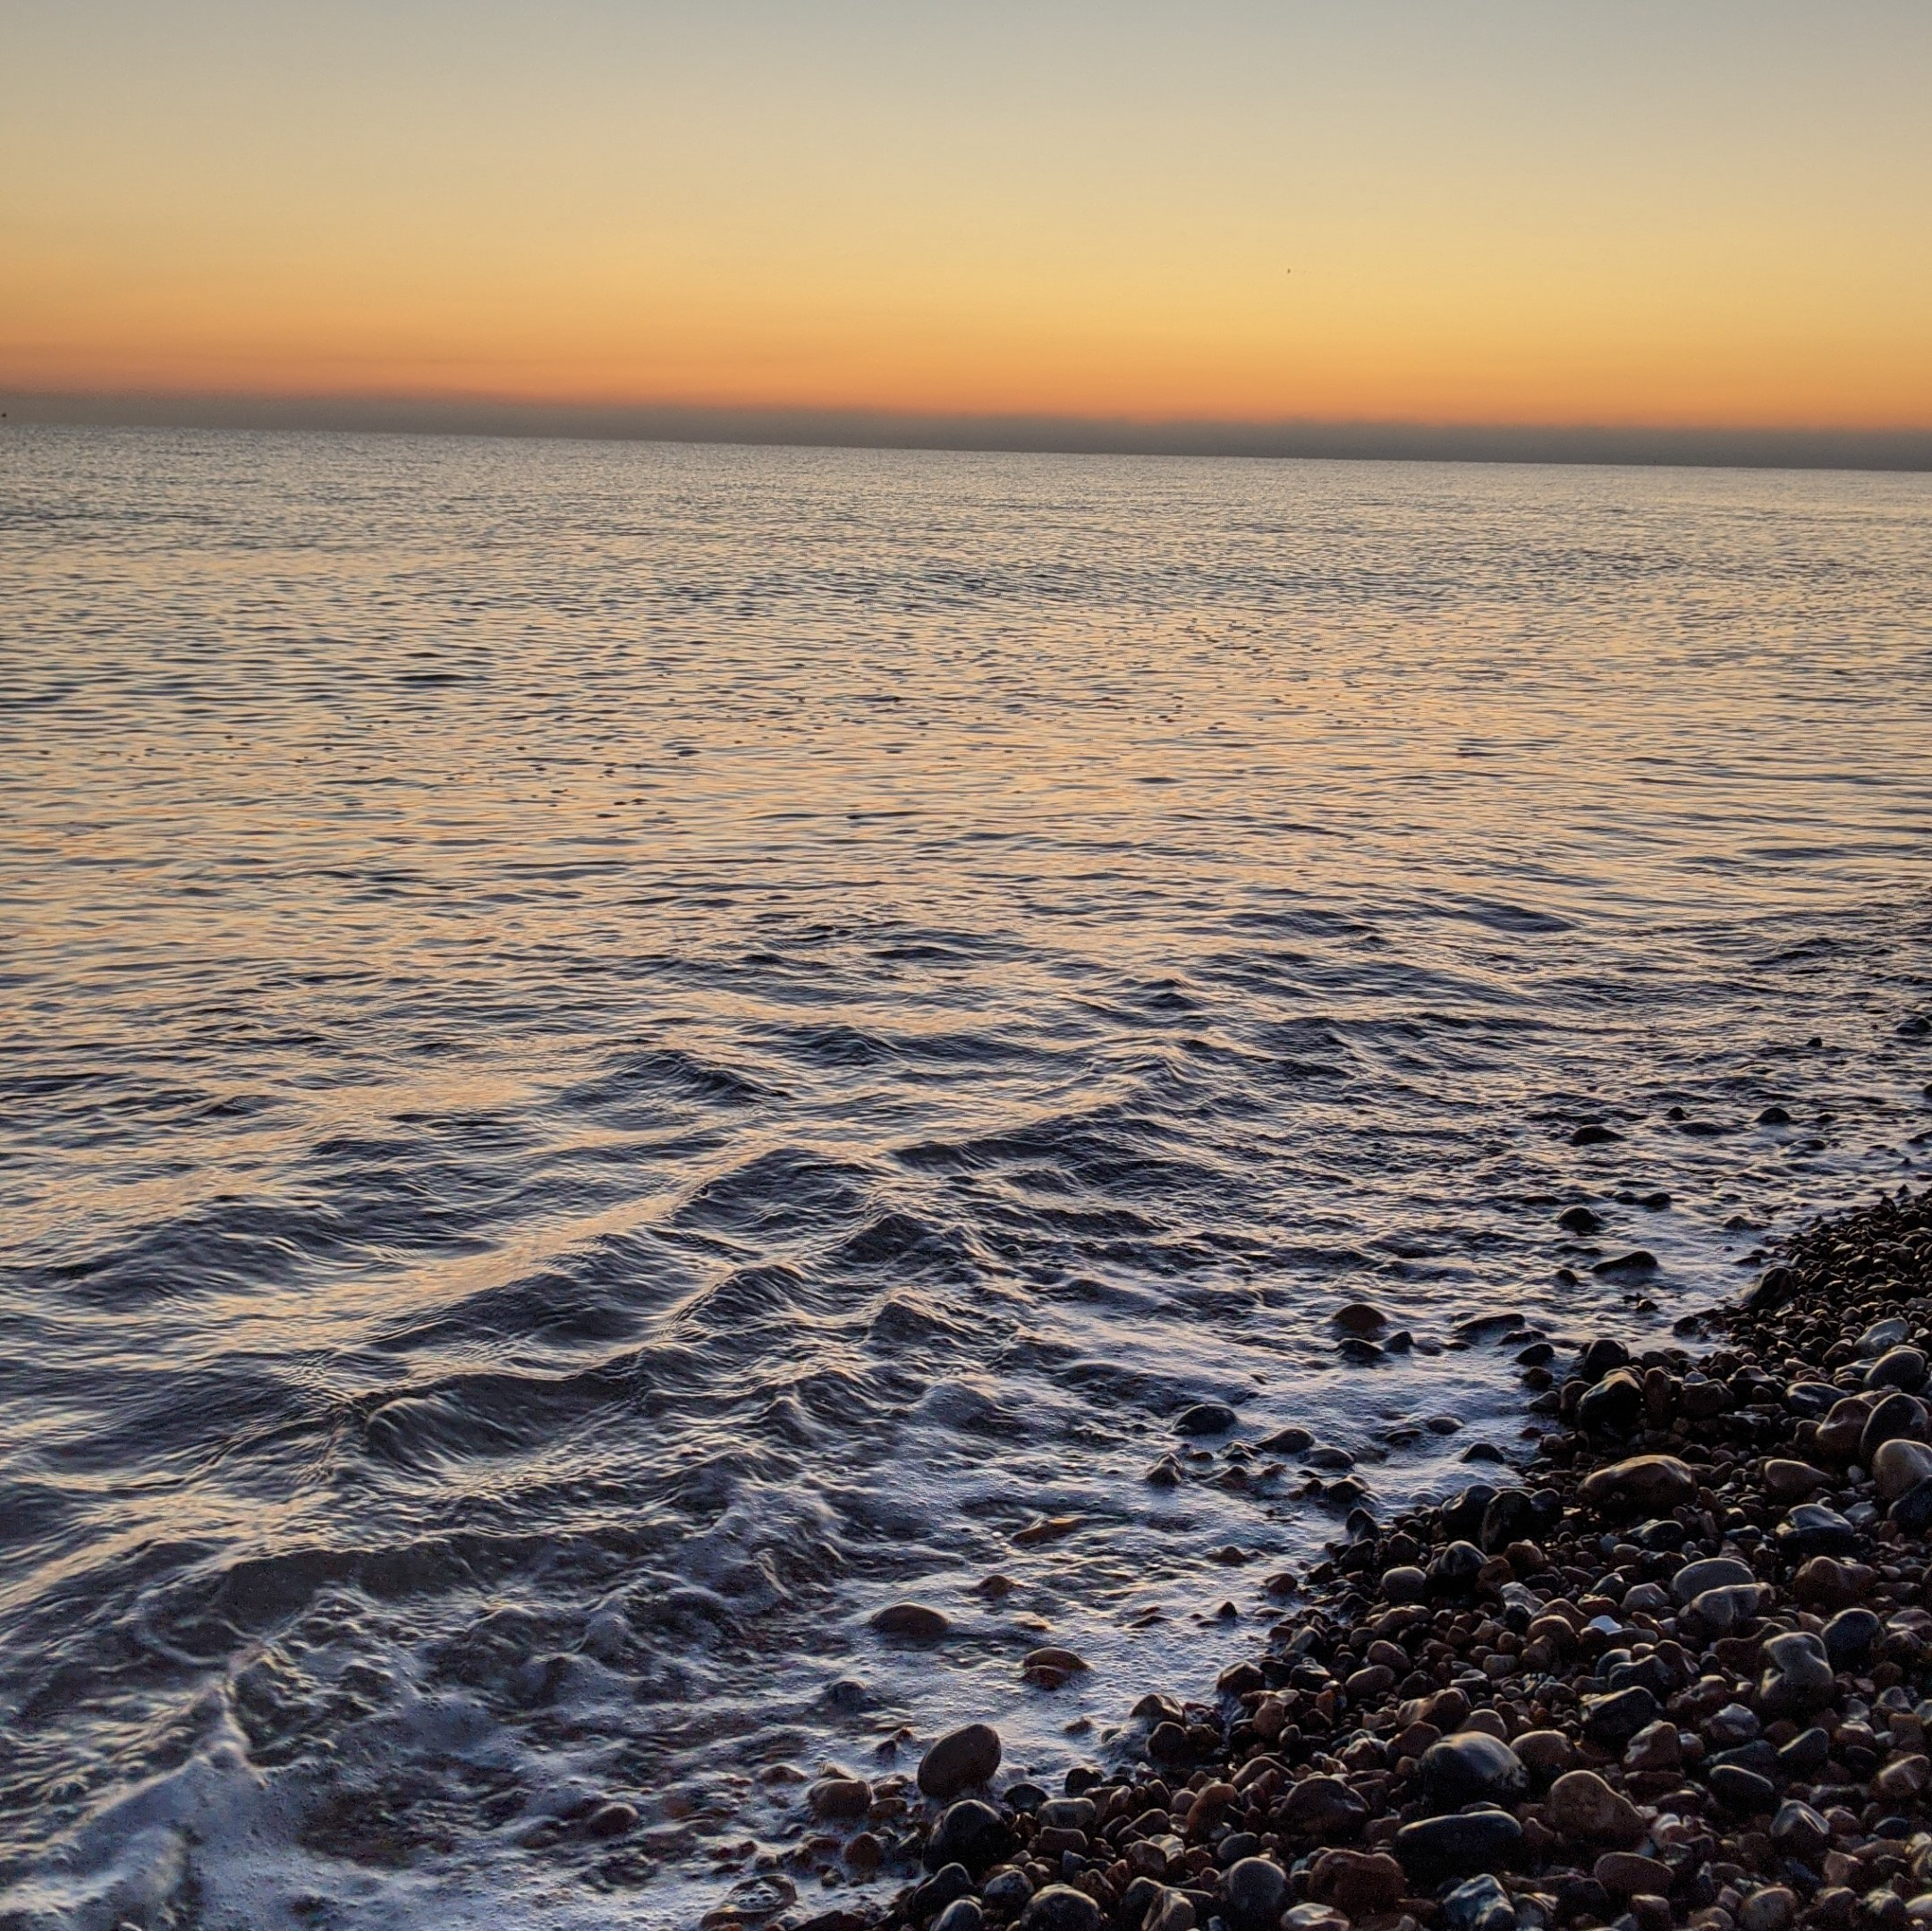 Calm sea with small wave breaking onto shingle and an orange sky.